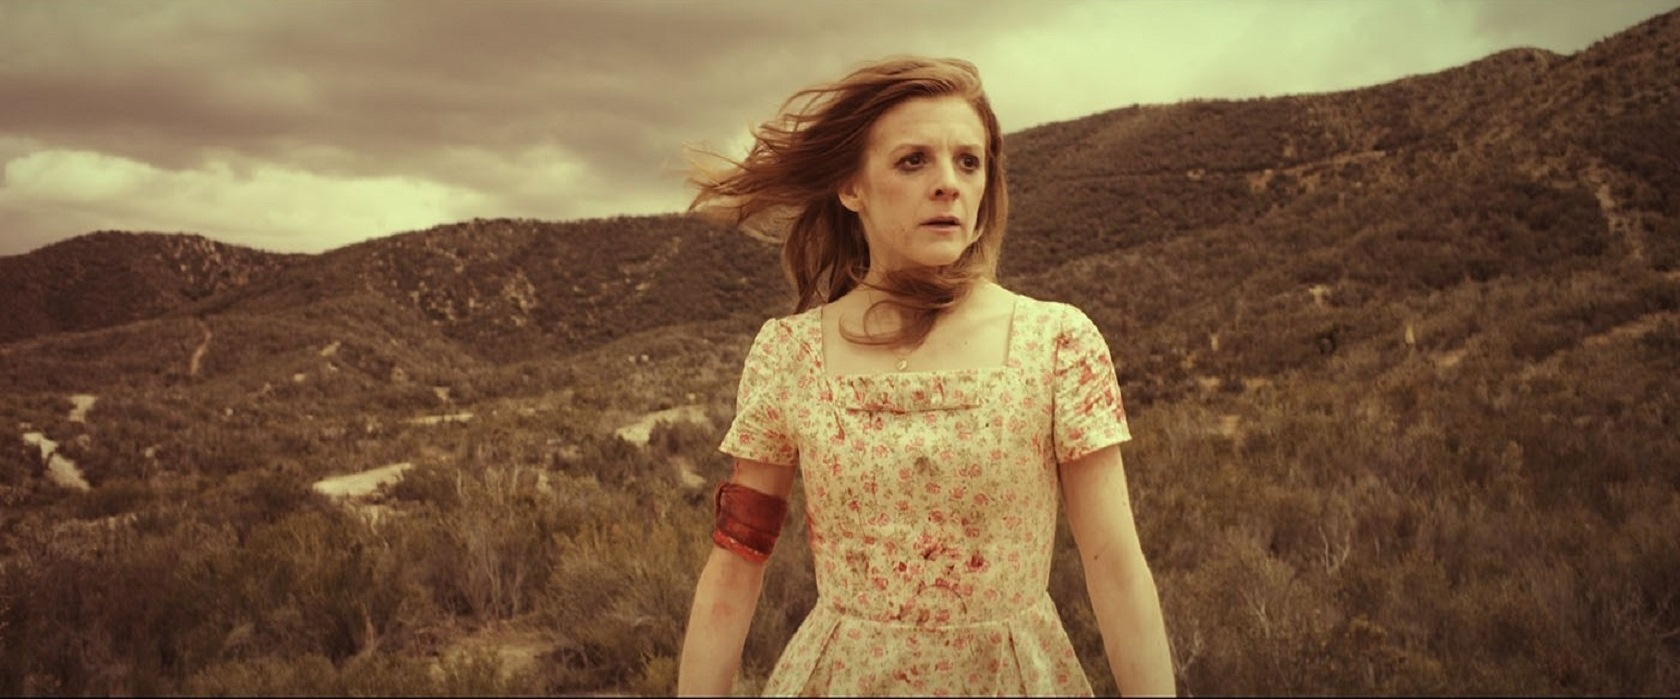 Ashley Bell in Carnage Park (2016)